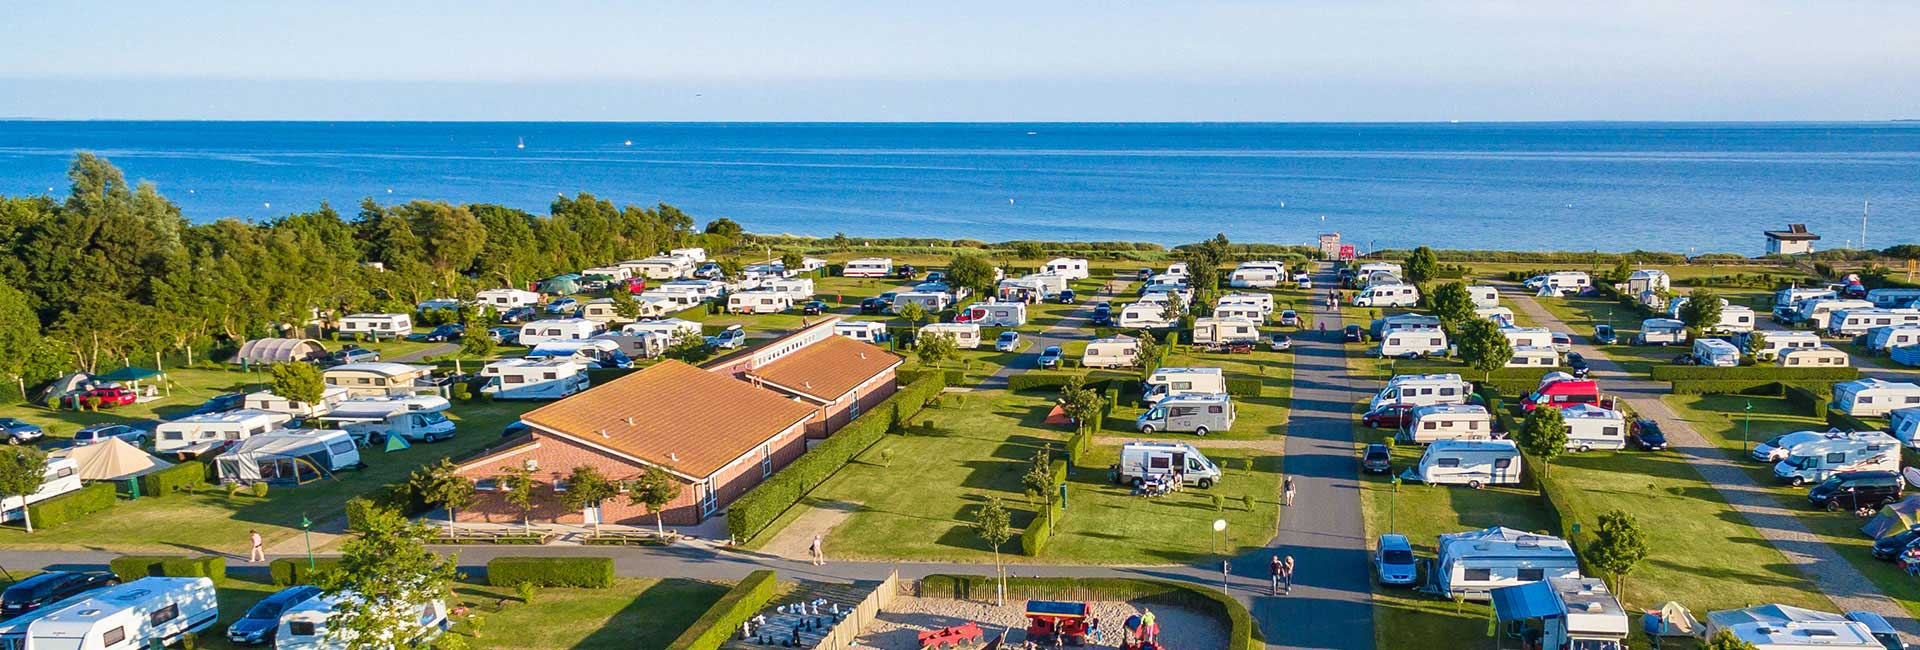 Camping Fehmarn Ostsee